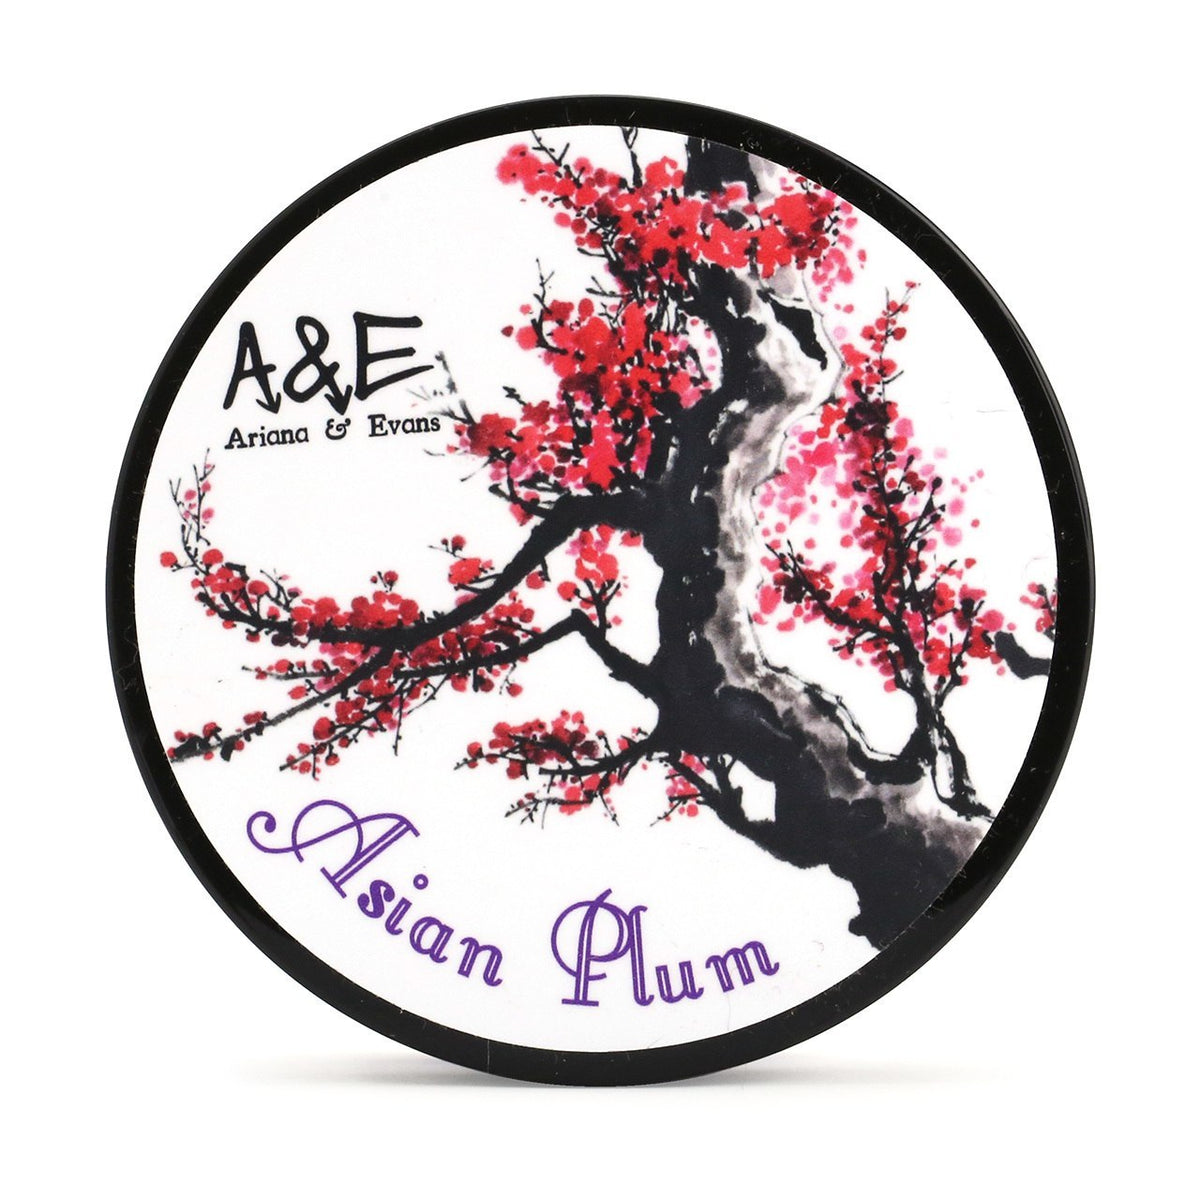 Ariana & Evans Shaving Soap - Asian Plum